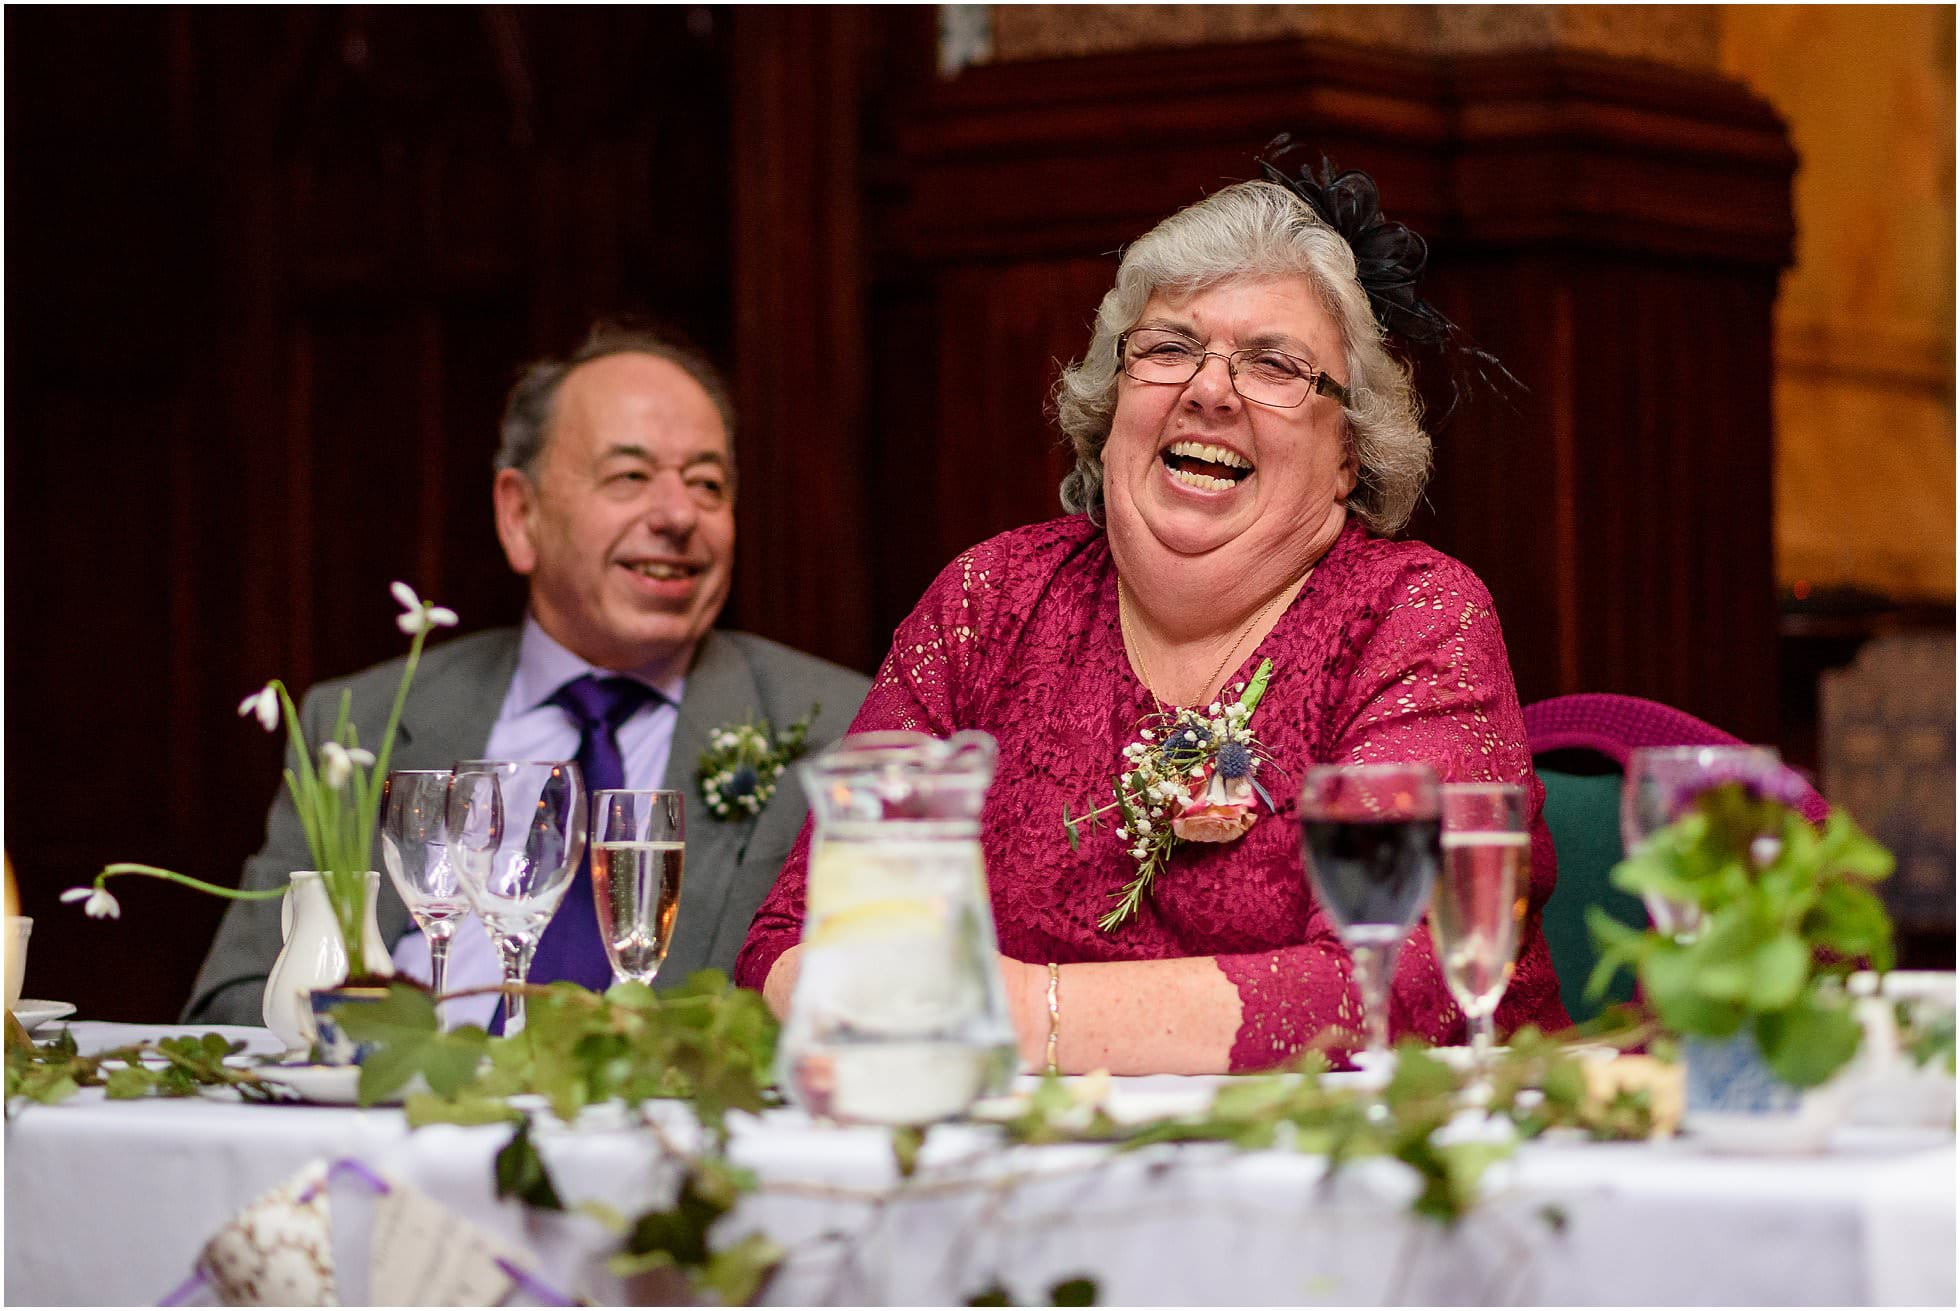 Raucous laughter during the speeches